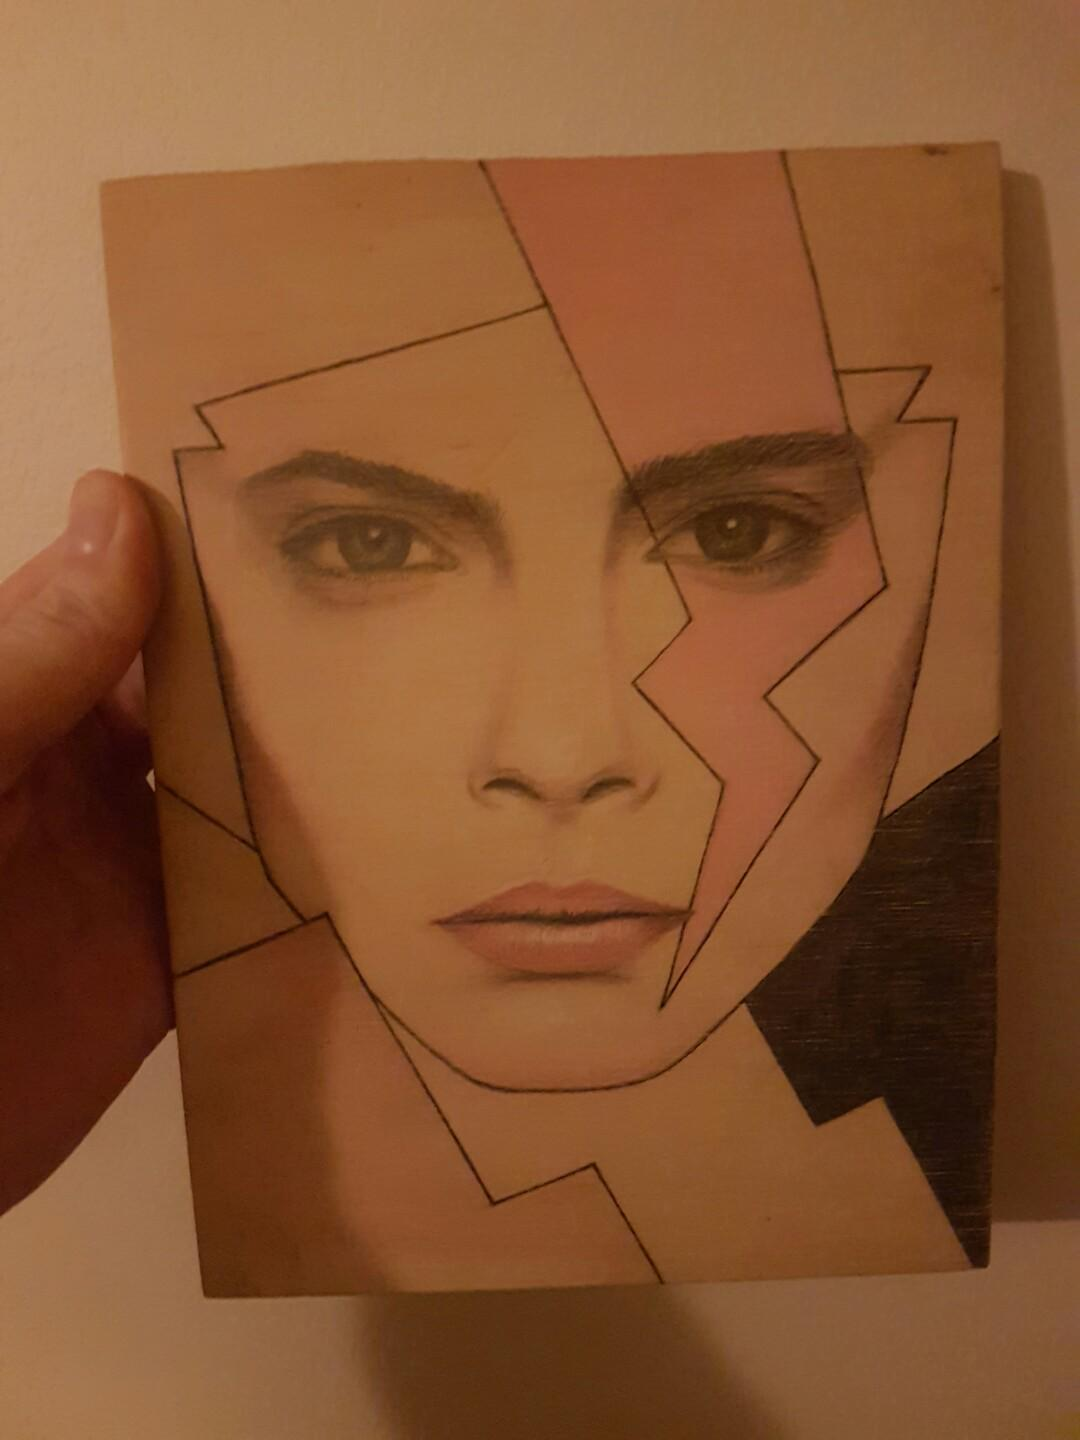 Original Artwork Bowie Style Girl Drawing/painting on timber